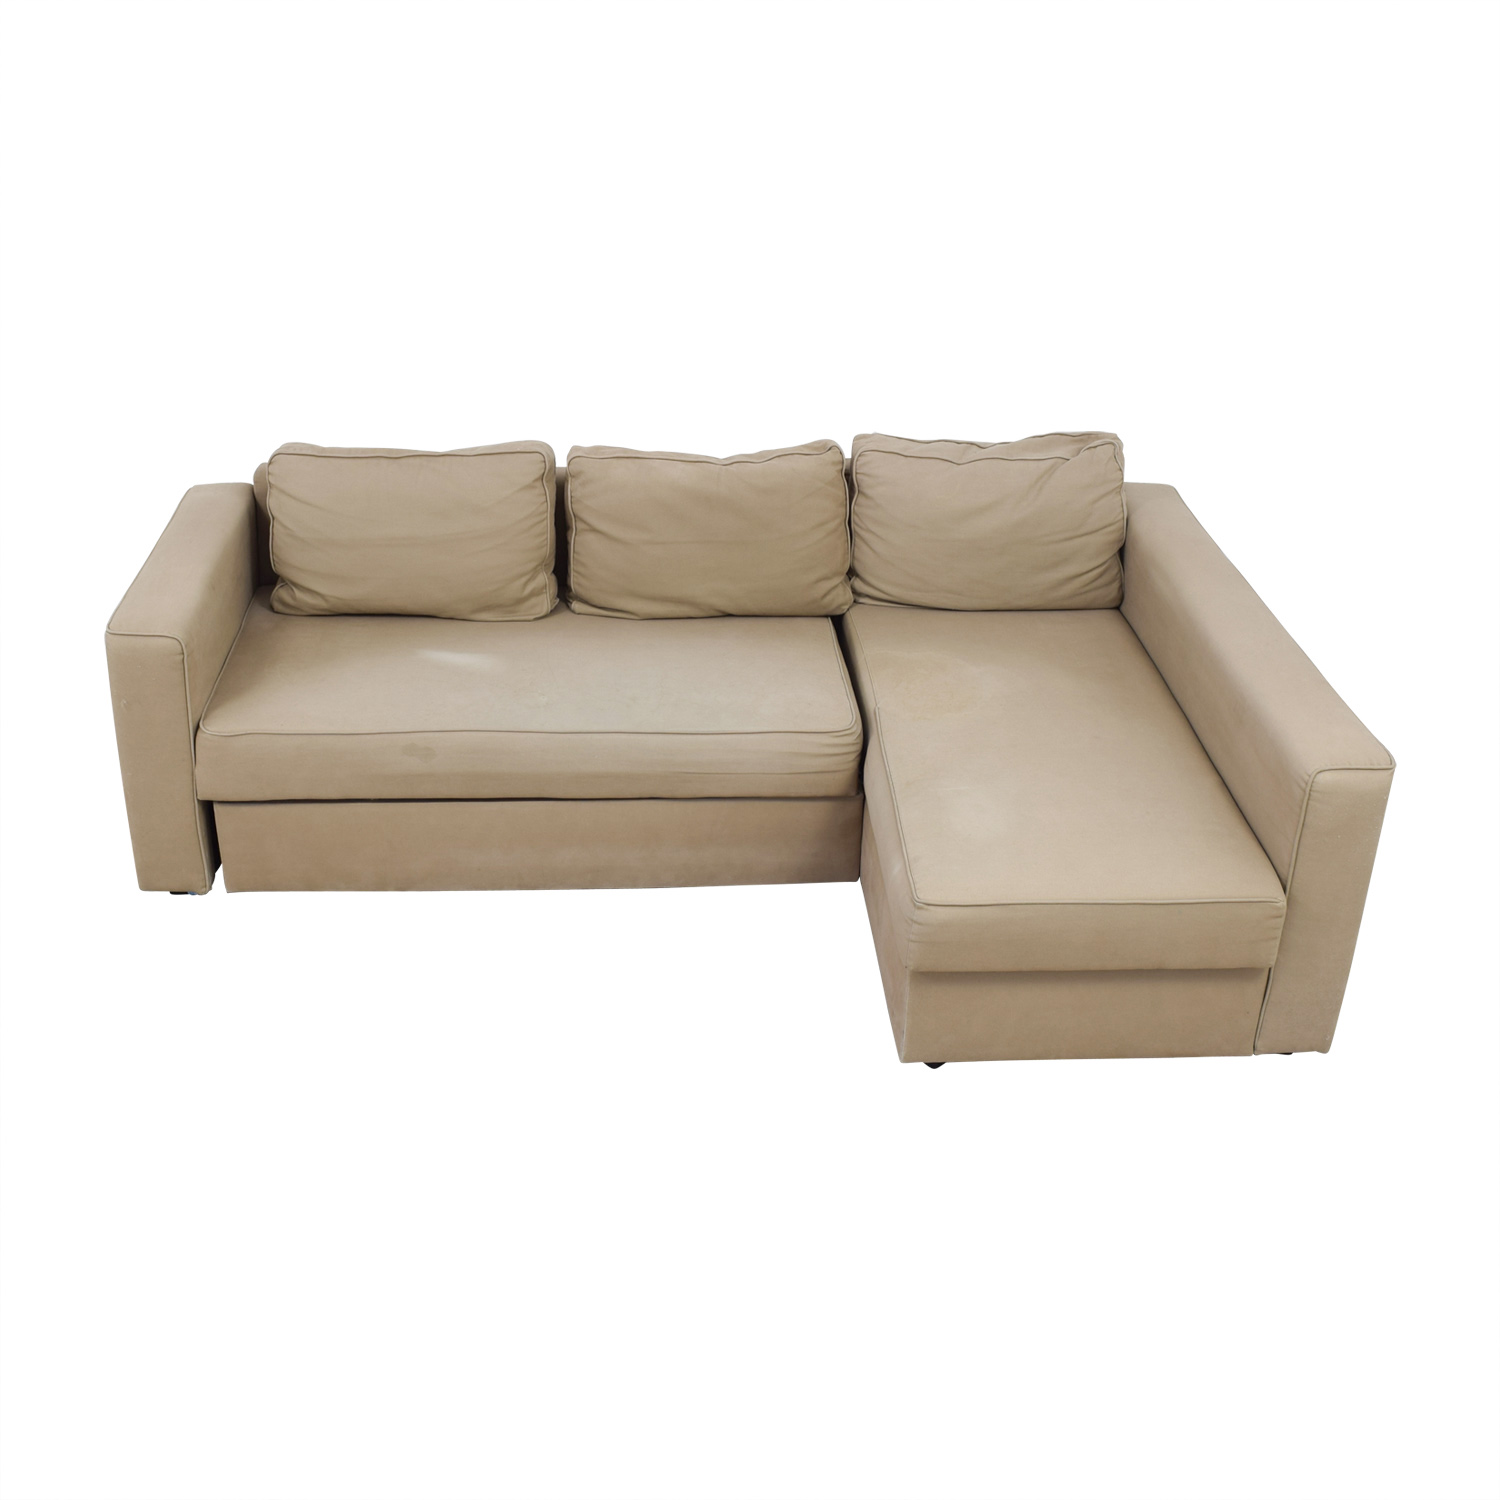 IKEA Manstad Sectional Sofa Bed with Storage sale